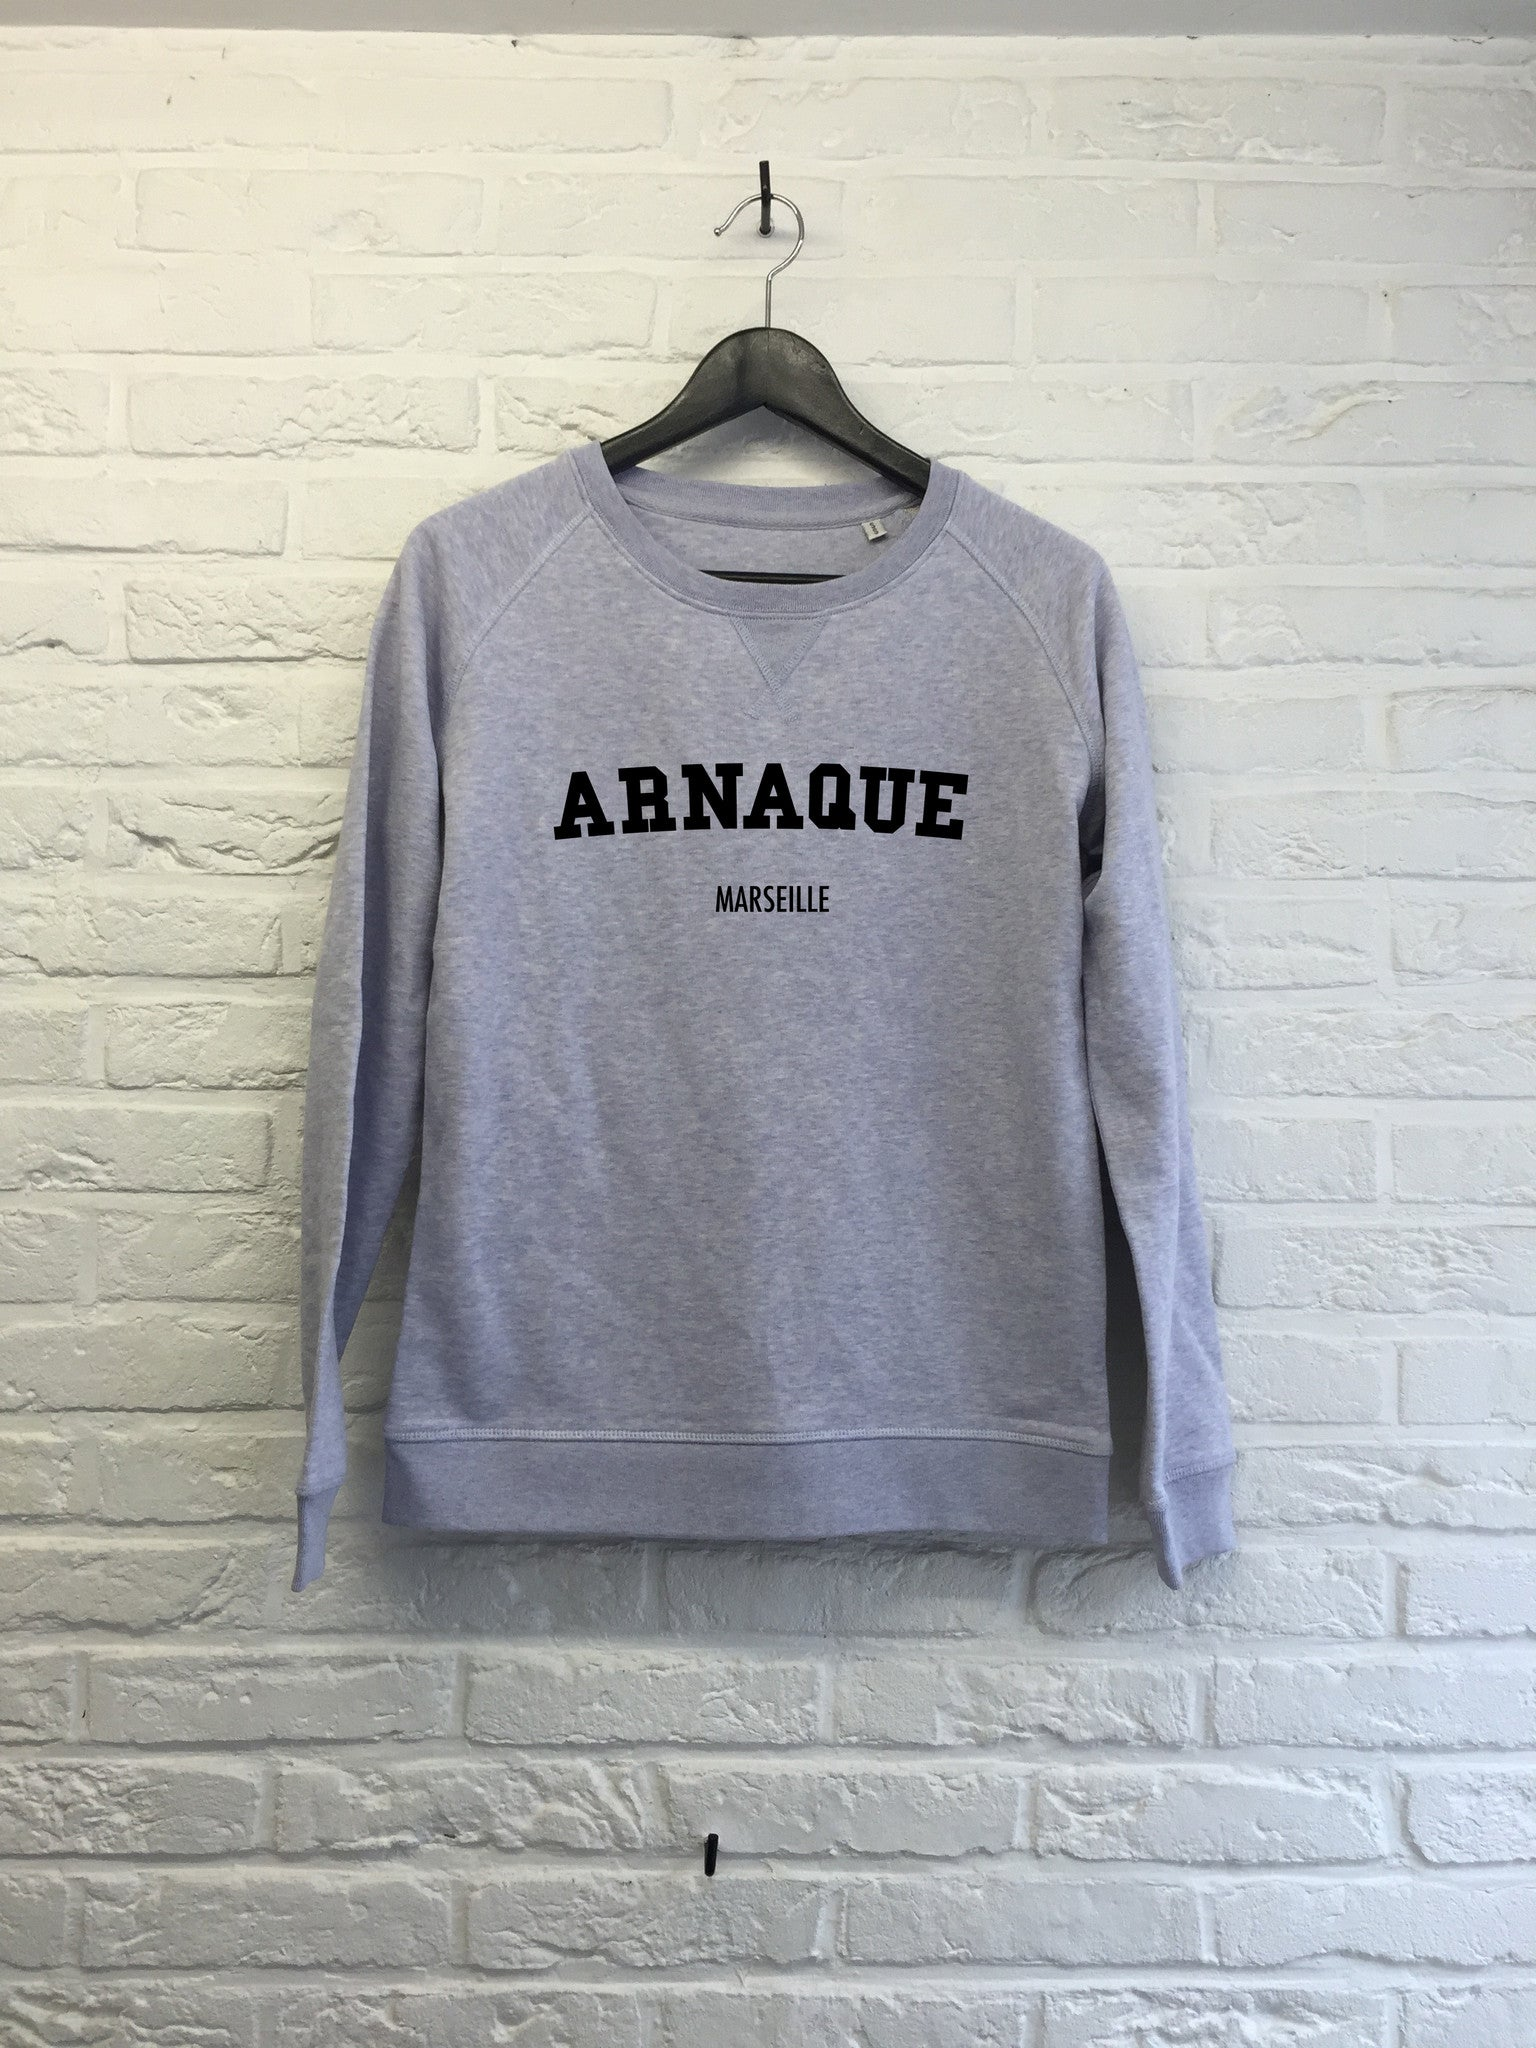 Arnaque Marseille - Sweat - Femme-Sweat shirts-Atelier Amelot